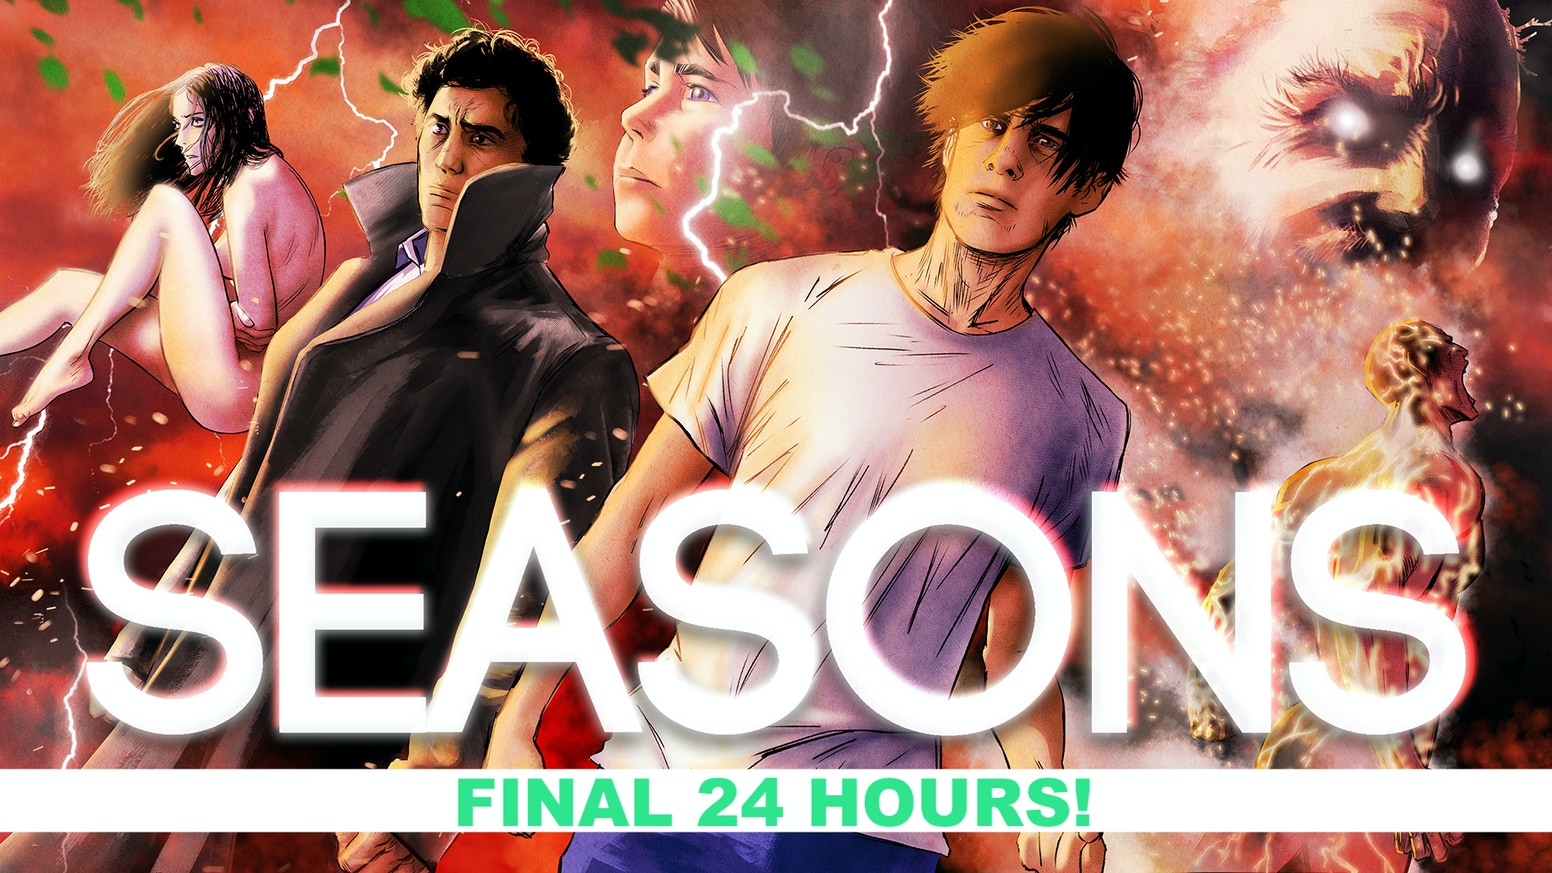 The highly-anticipated second volume in the acclaimed supernatural/superhero series, SEASONS.